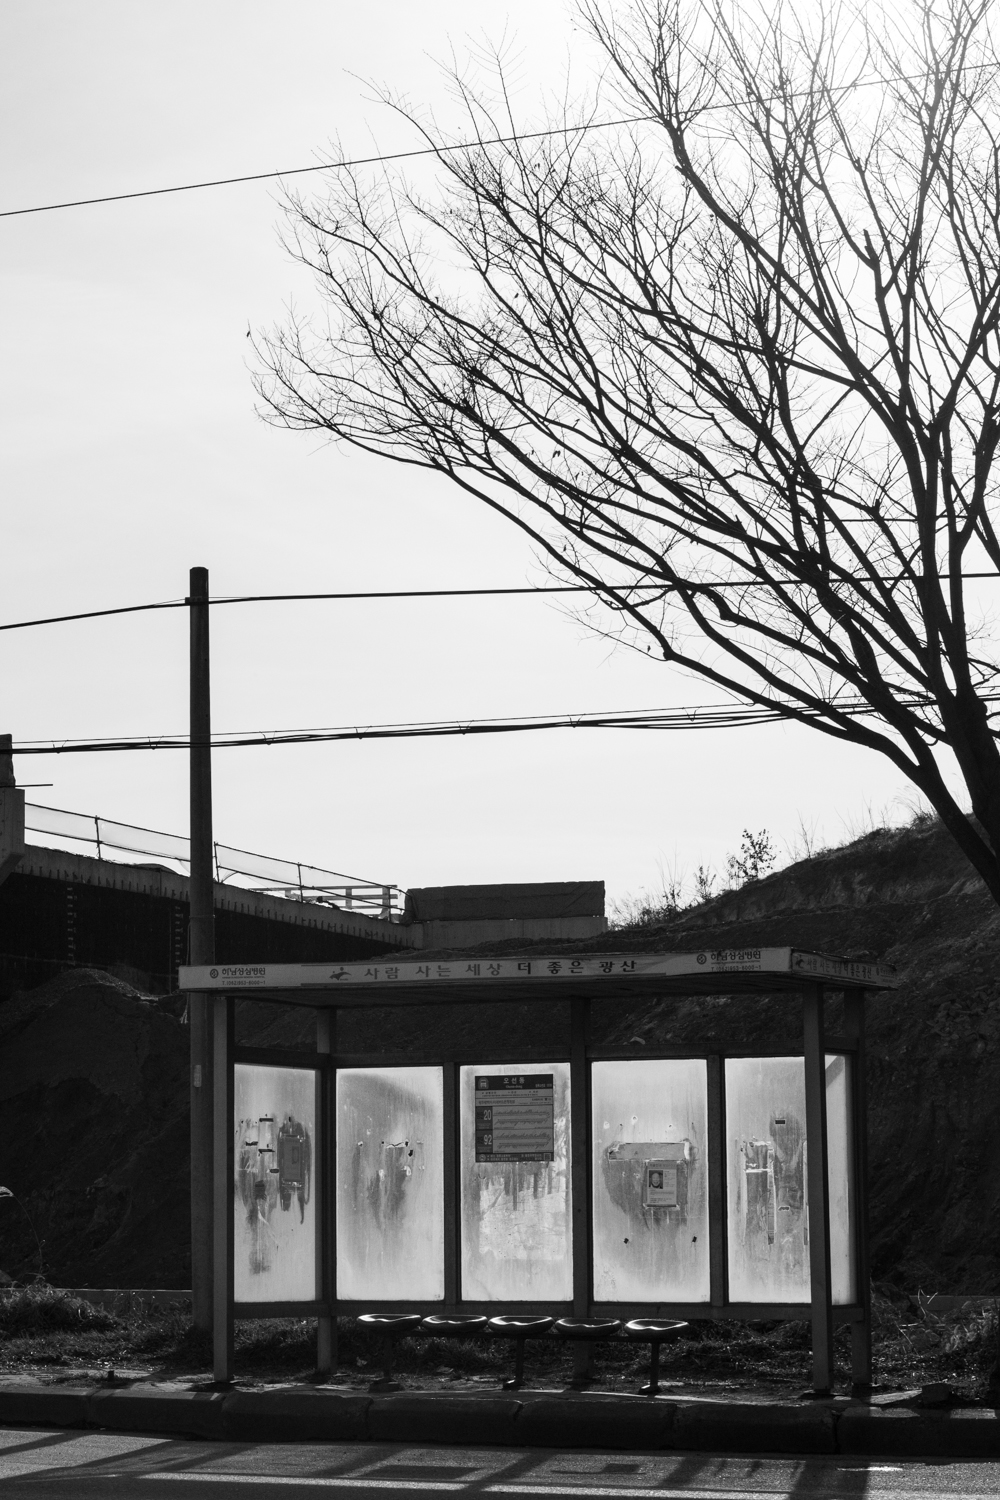 Bus stop in the factory district of Gwangju. #92 to #20 transition.